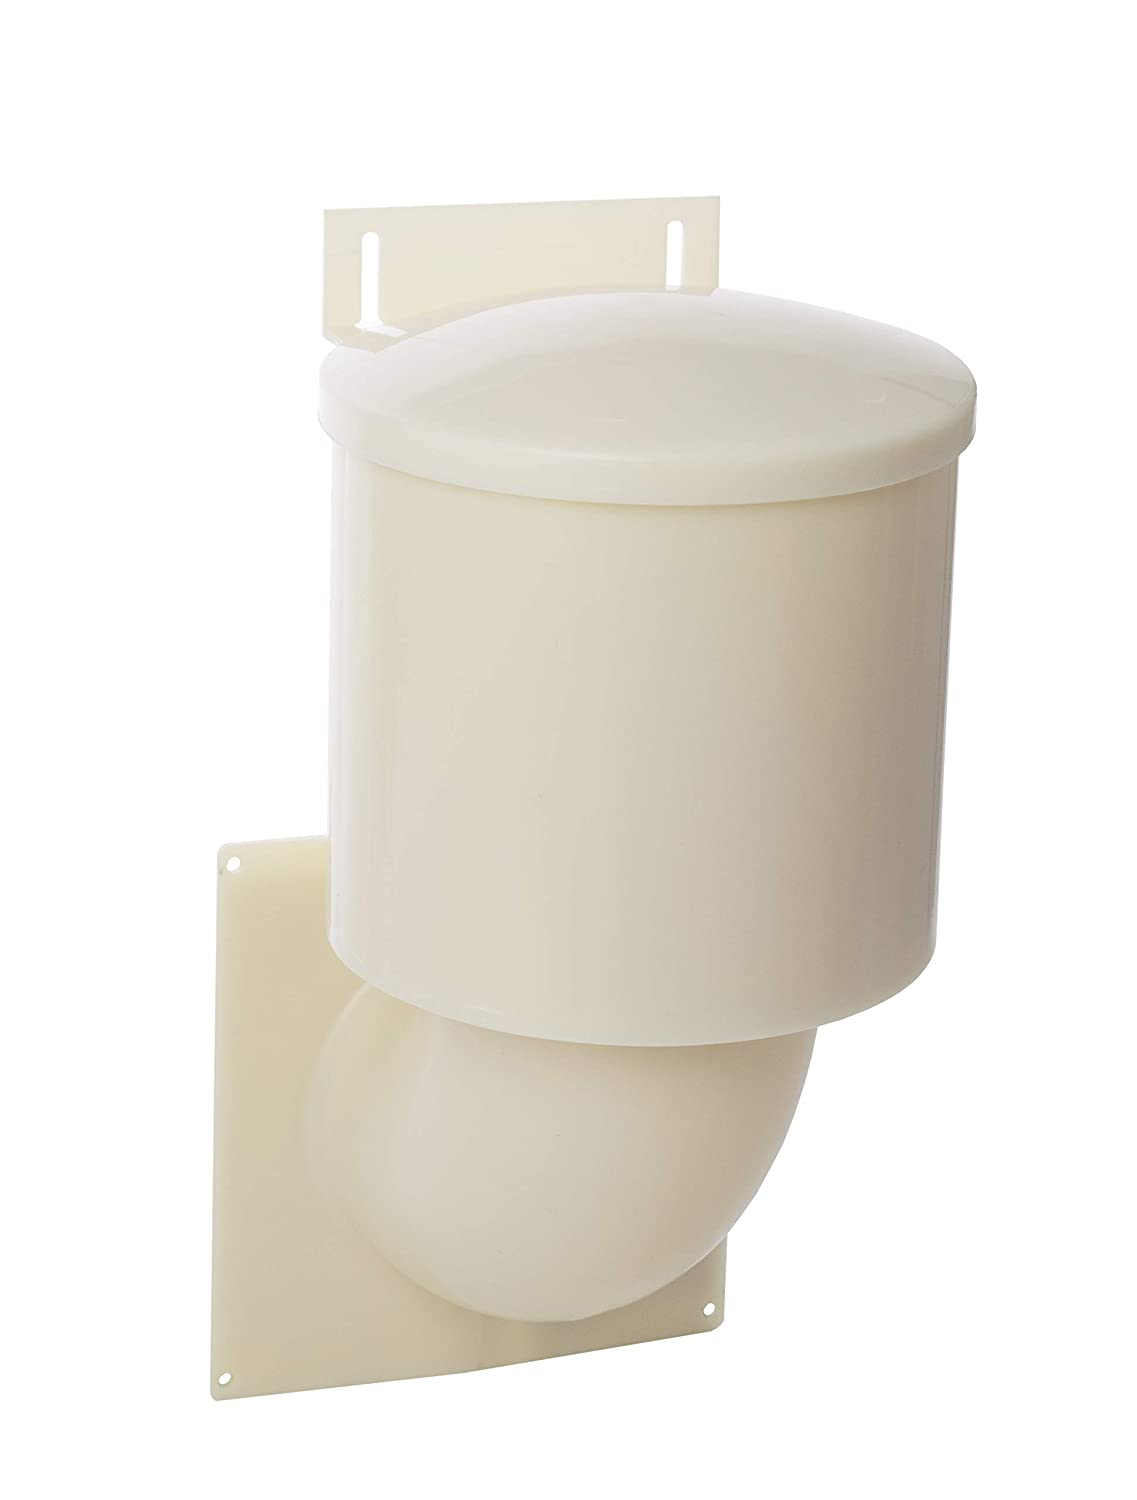 Heartland Natural Energy Saving Dryer Vent Closure - Outside Dryer Vent Cover Adapts to Outdoor Siding